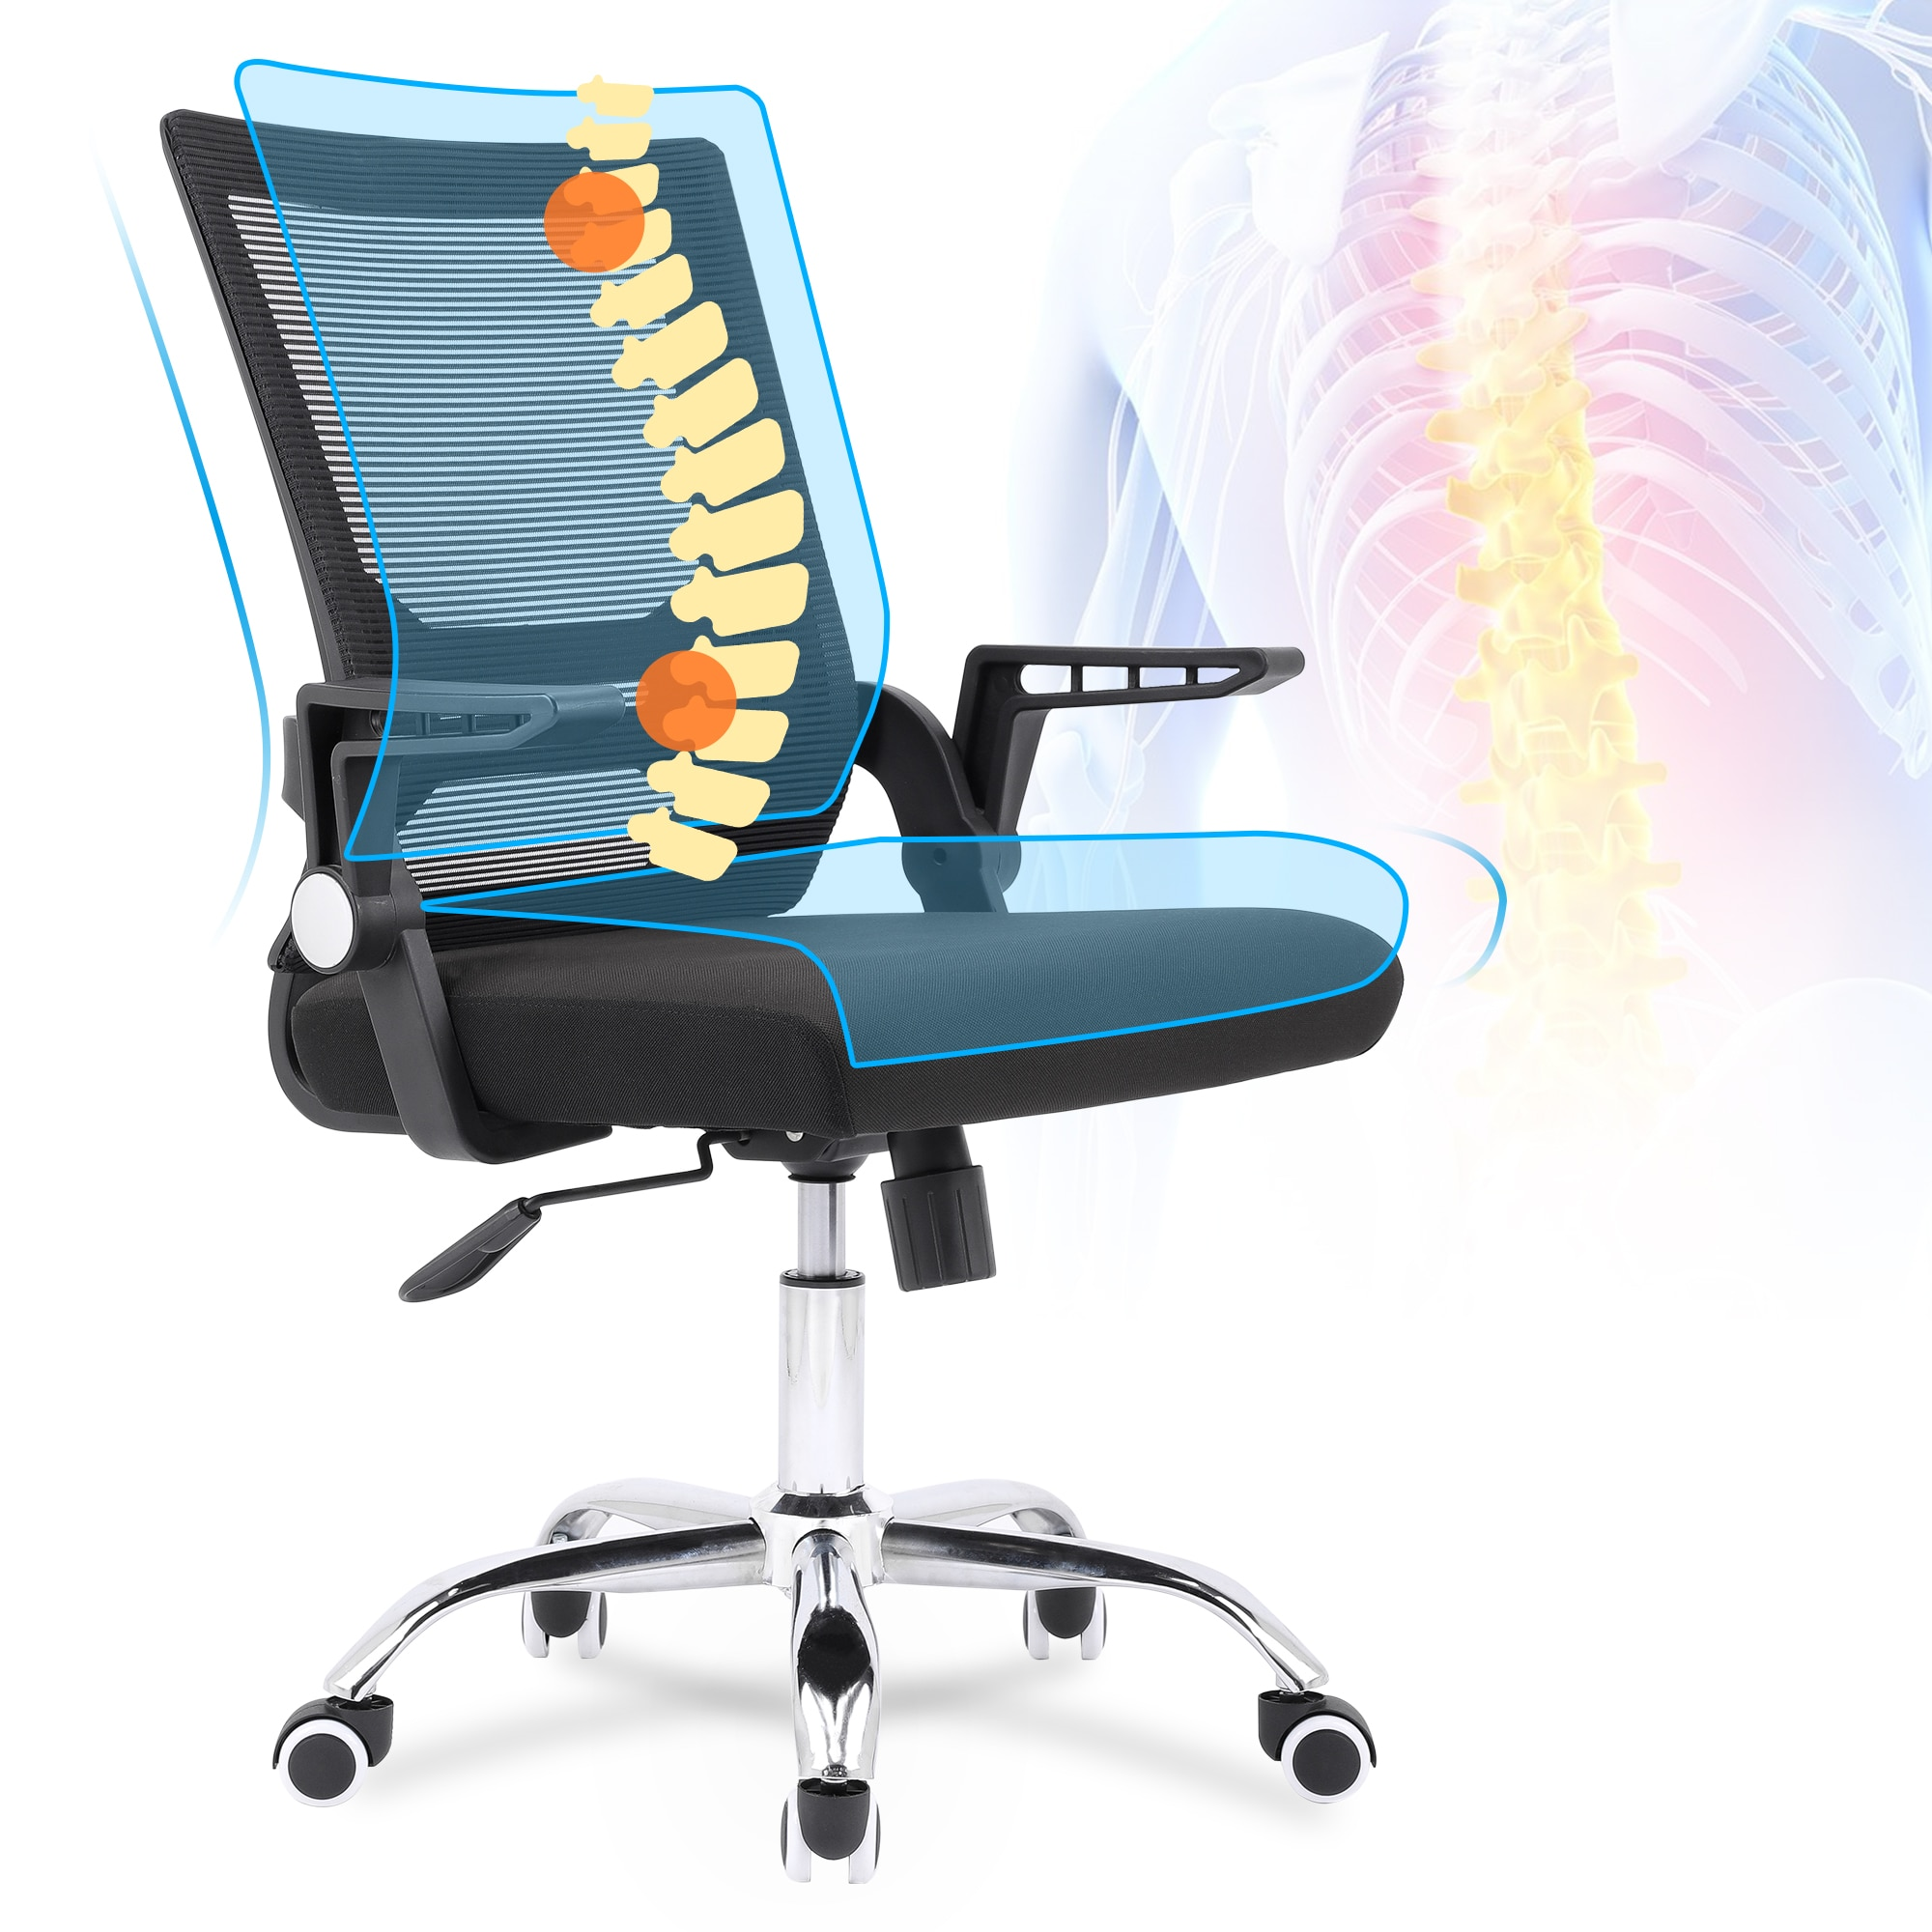 Hfd206d94142a4c708c1270639ff4b9eaa - Sigtua Swiveling Desk Chair Breathable Height-adjustable PC Chair Ergonomic Executive Black Computer Office Chair